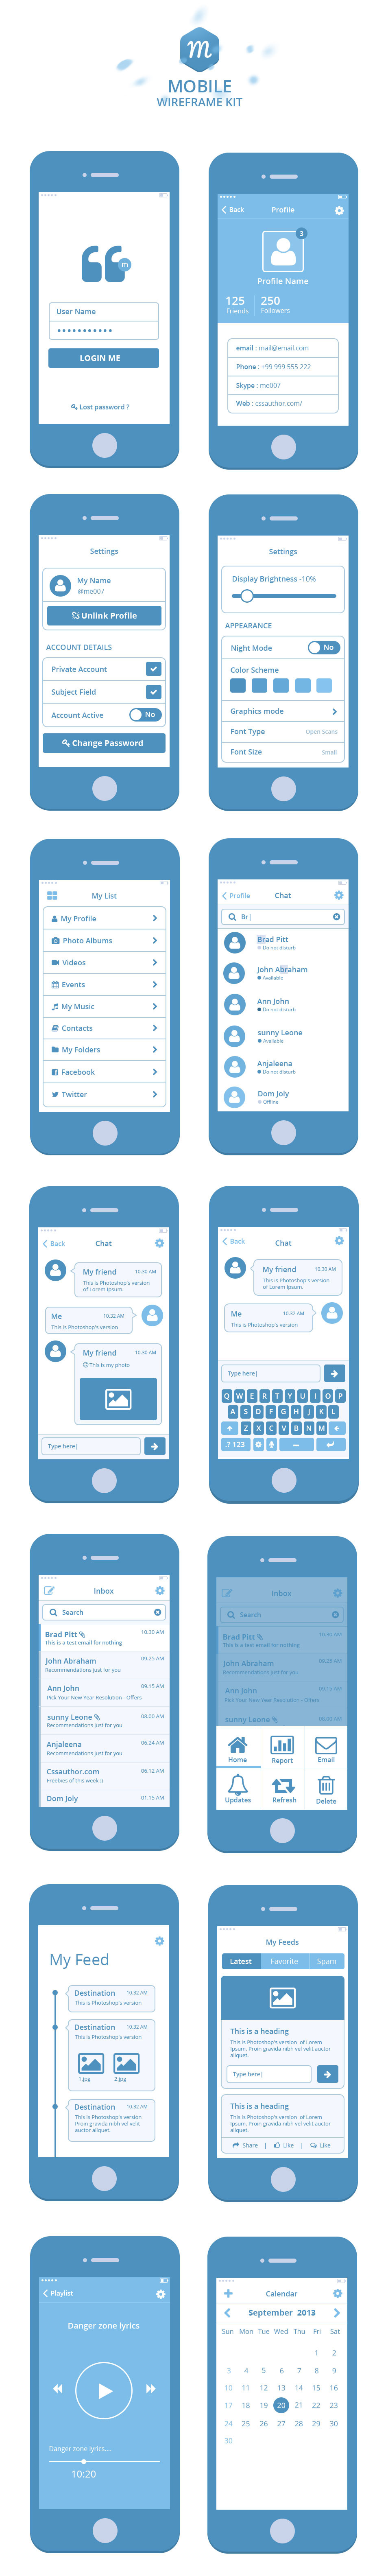 Mobile-Wireframe-Kit-PSD